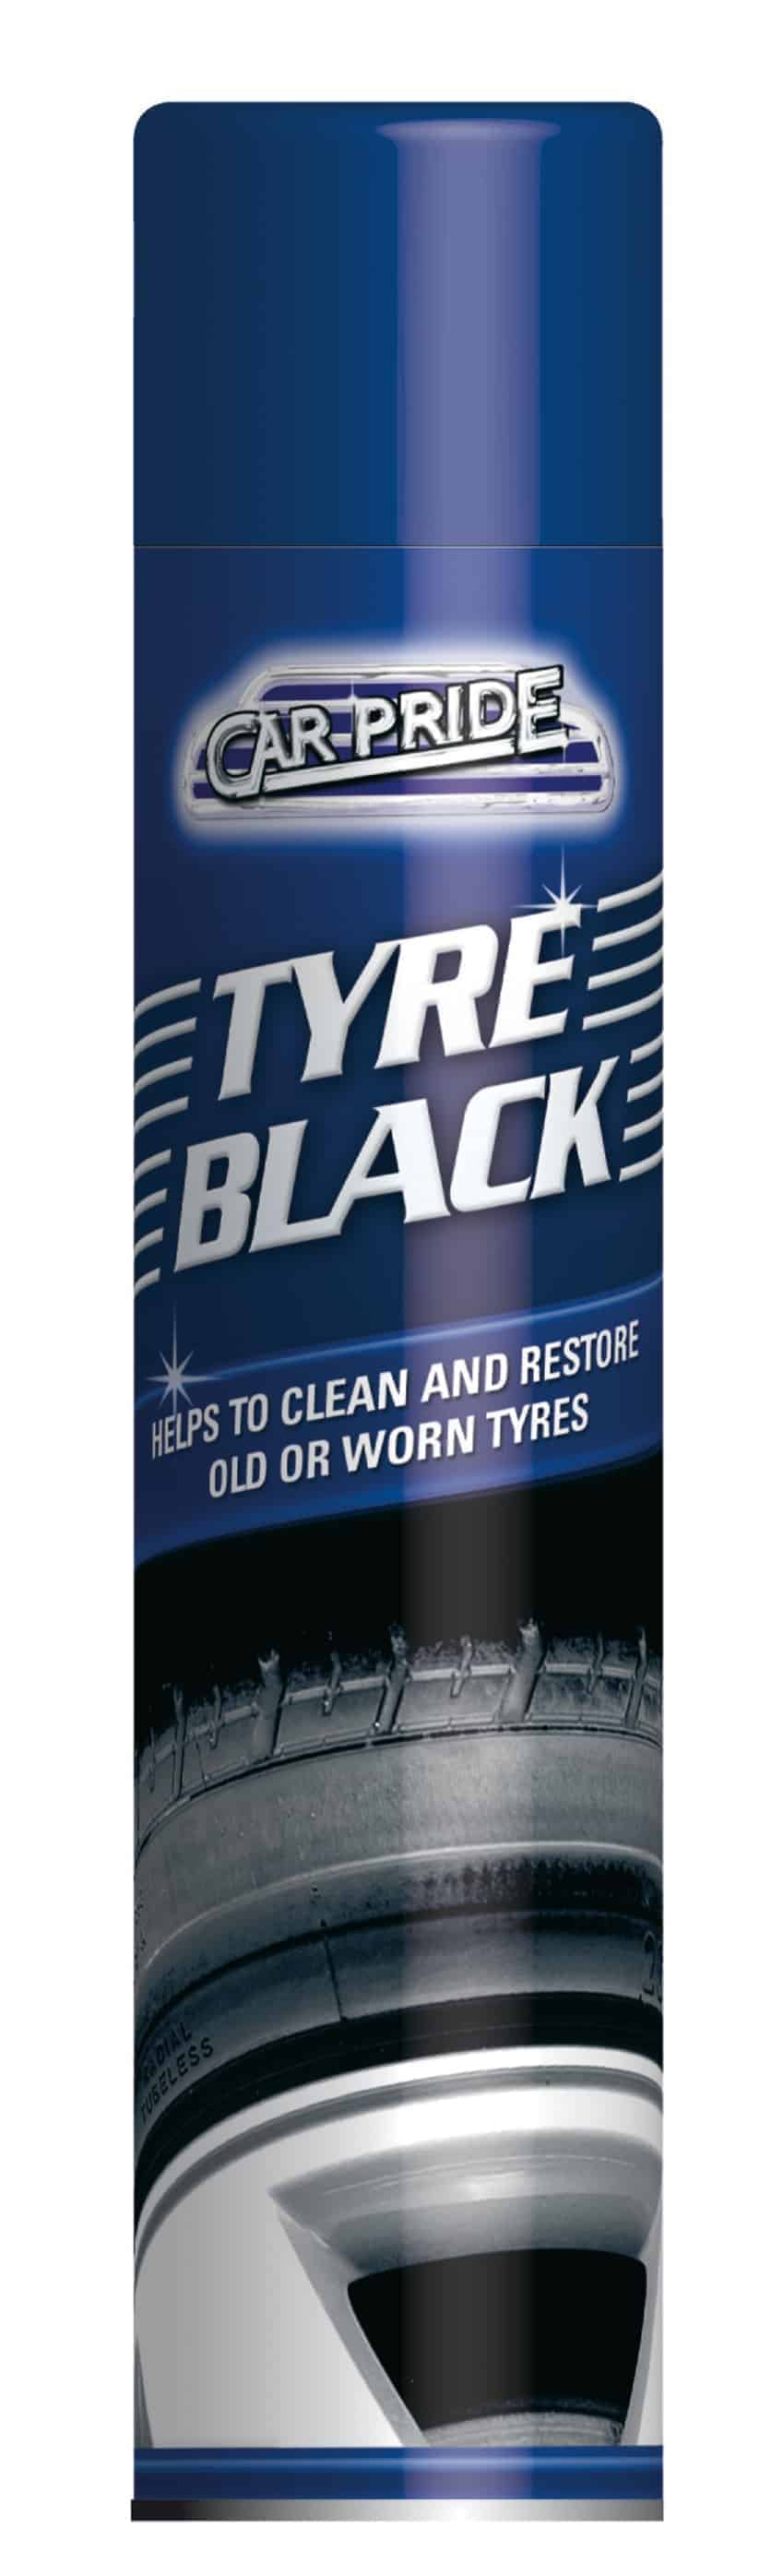 Carpride 250ml Tyre Black